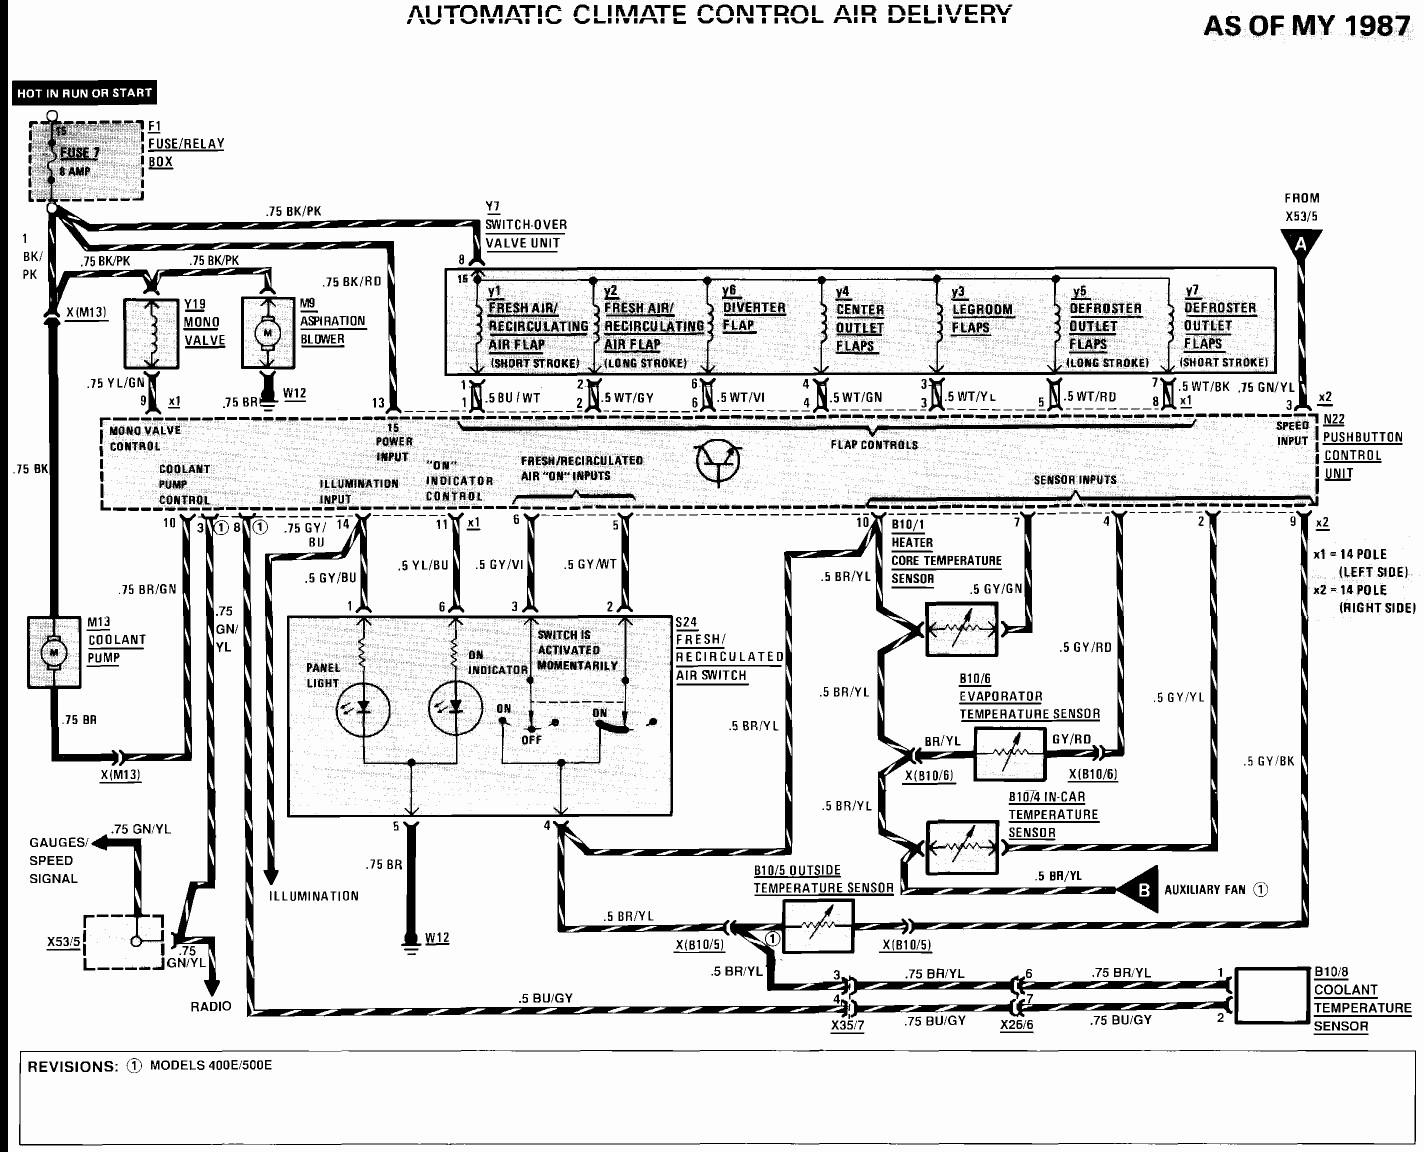 hight resolution of 1994 mercedes e320 fuse schematic diagram wiring diagram 1994 mercedes e320 fuse schematic diagram